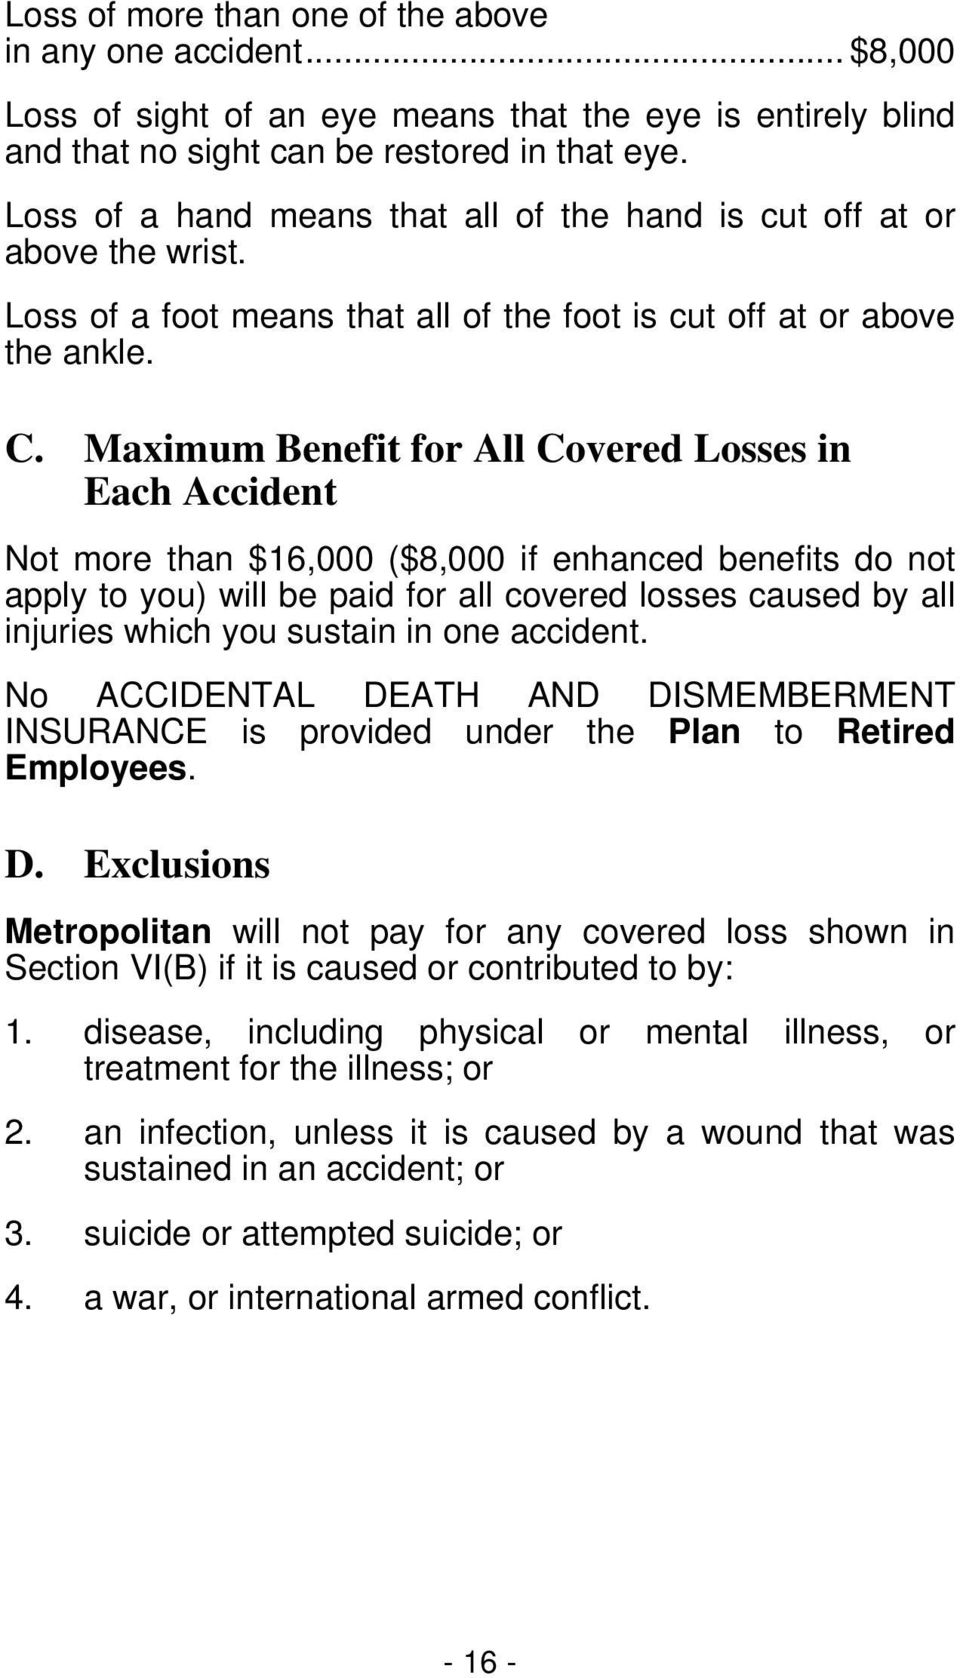 Maximum Benefit for All Covered Losses in Each Accident Not more than $16,000 ($8,000 if enhanced benefits do not apply to you) will be paid for all covered losses caused by all injuries which you